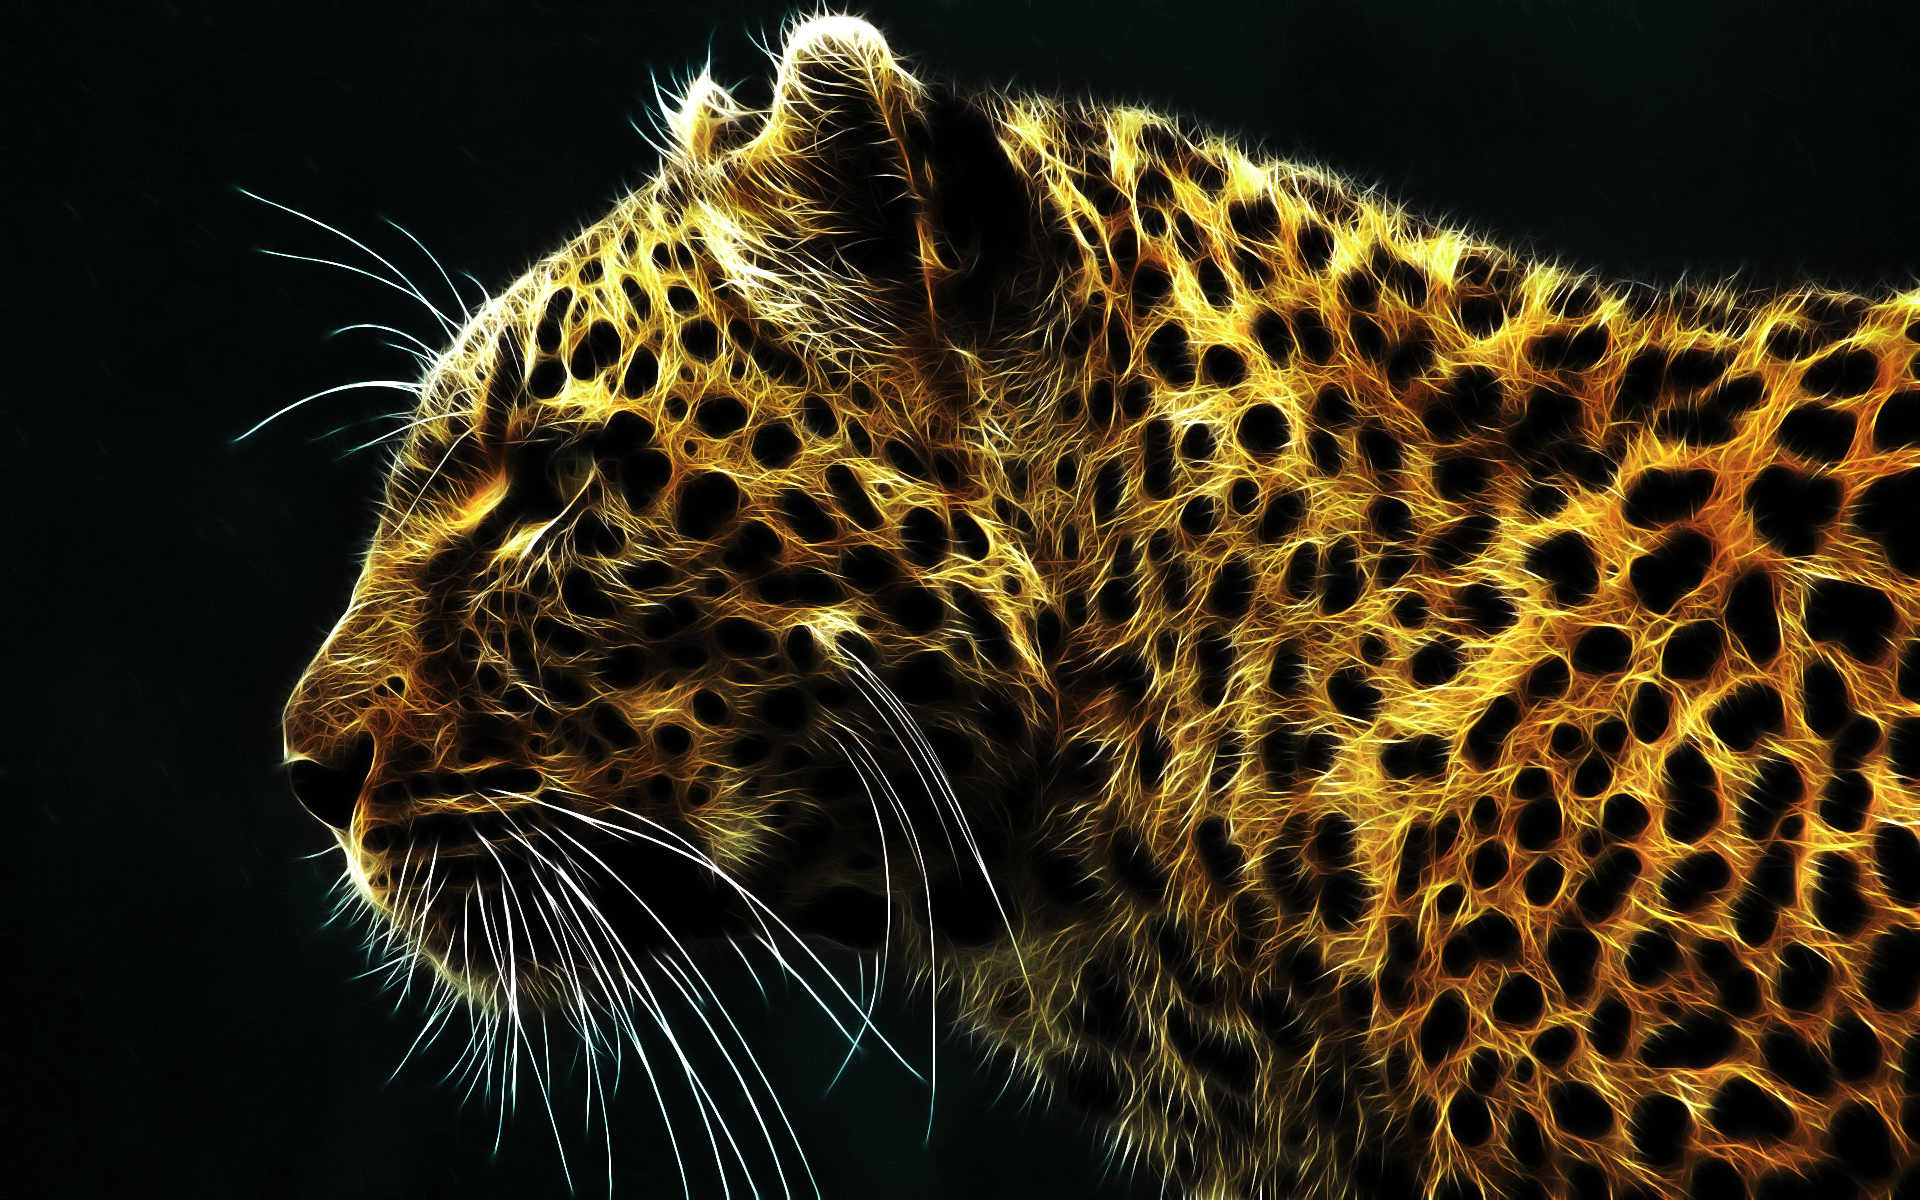 Djur - Cheetah  - Animal Tiger - Cgi - Hunter - Predator - Katt - Animals - Lejon -  äpple  - Tiger - Draak - Djur Bakgrund